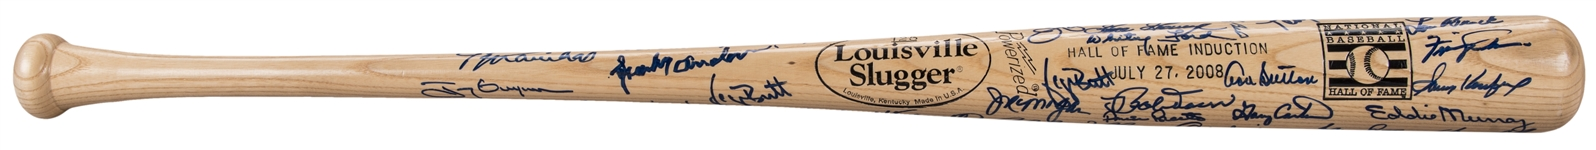 Hall of Famers Multi Signed 2008 National Baseball Hall of Fame Bat With Over 40+ Signatures (Doerr Family LOA & JSA)